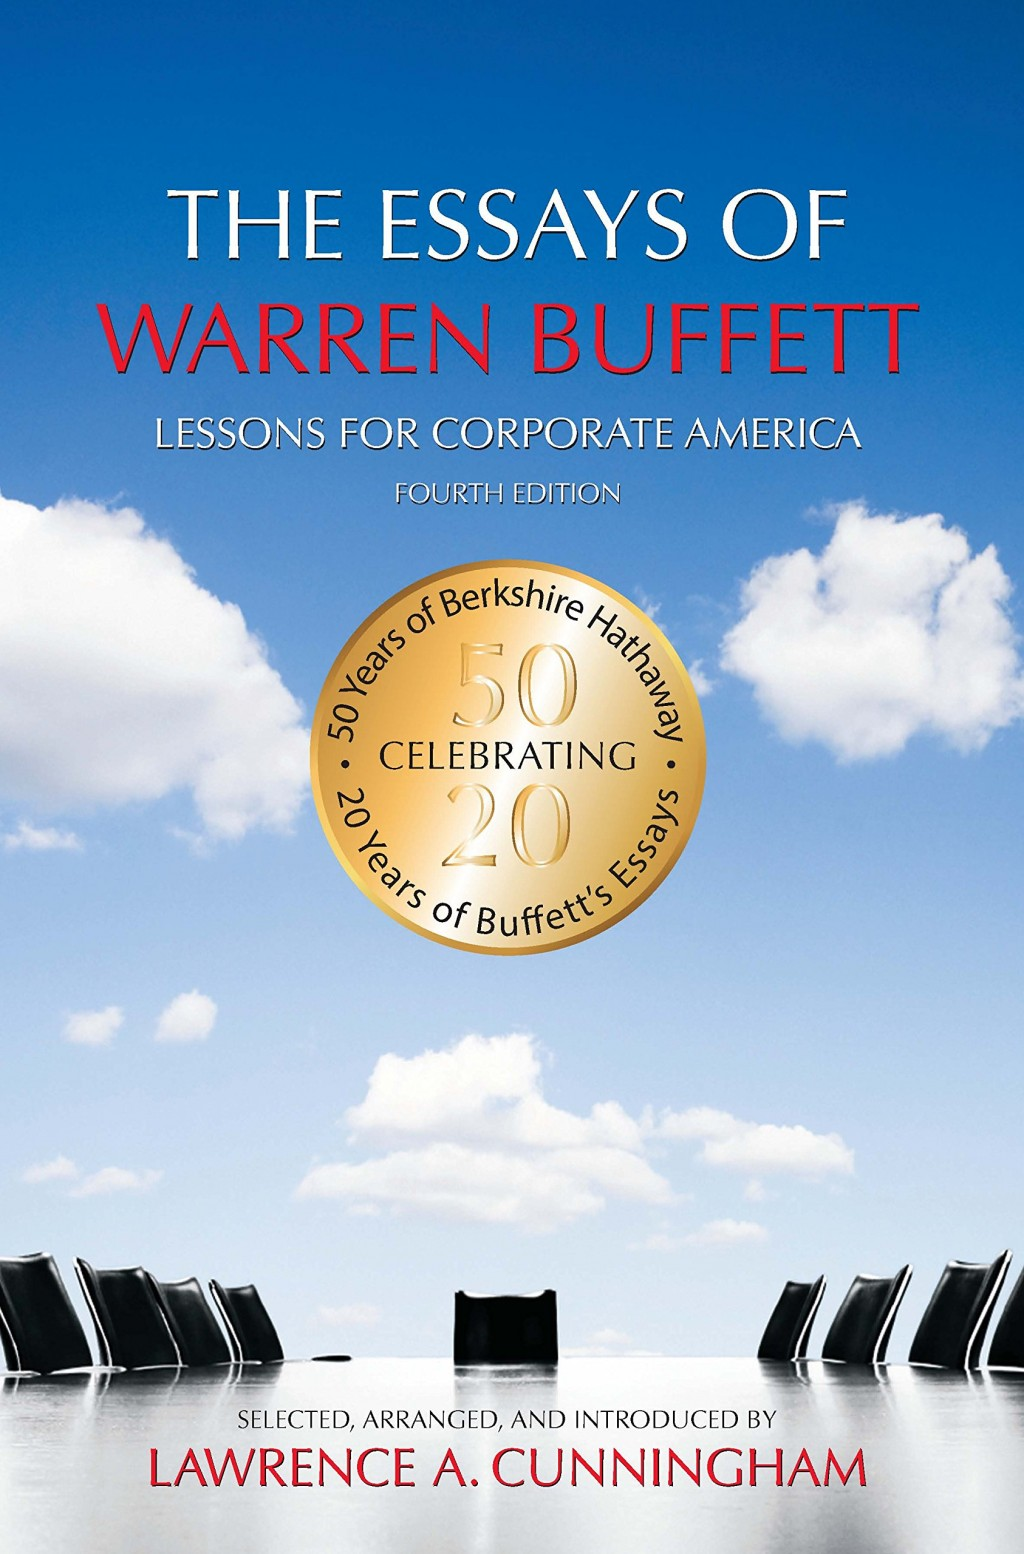 001 81wiv2brymel Essays Of Warren Buffett Essay Top 4th Edition The Pdf Free Large